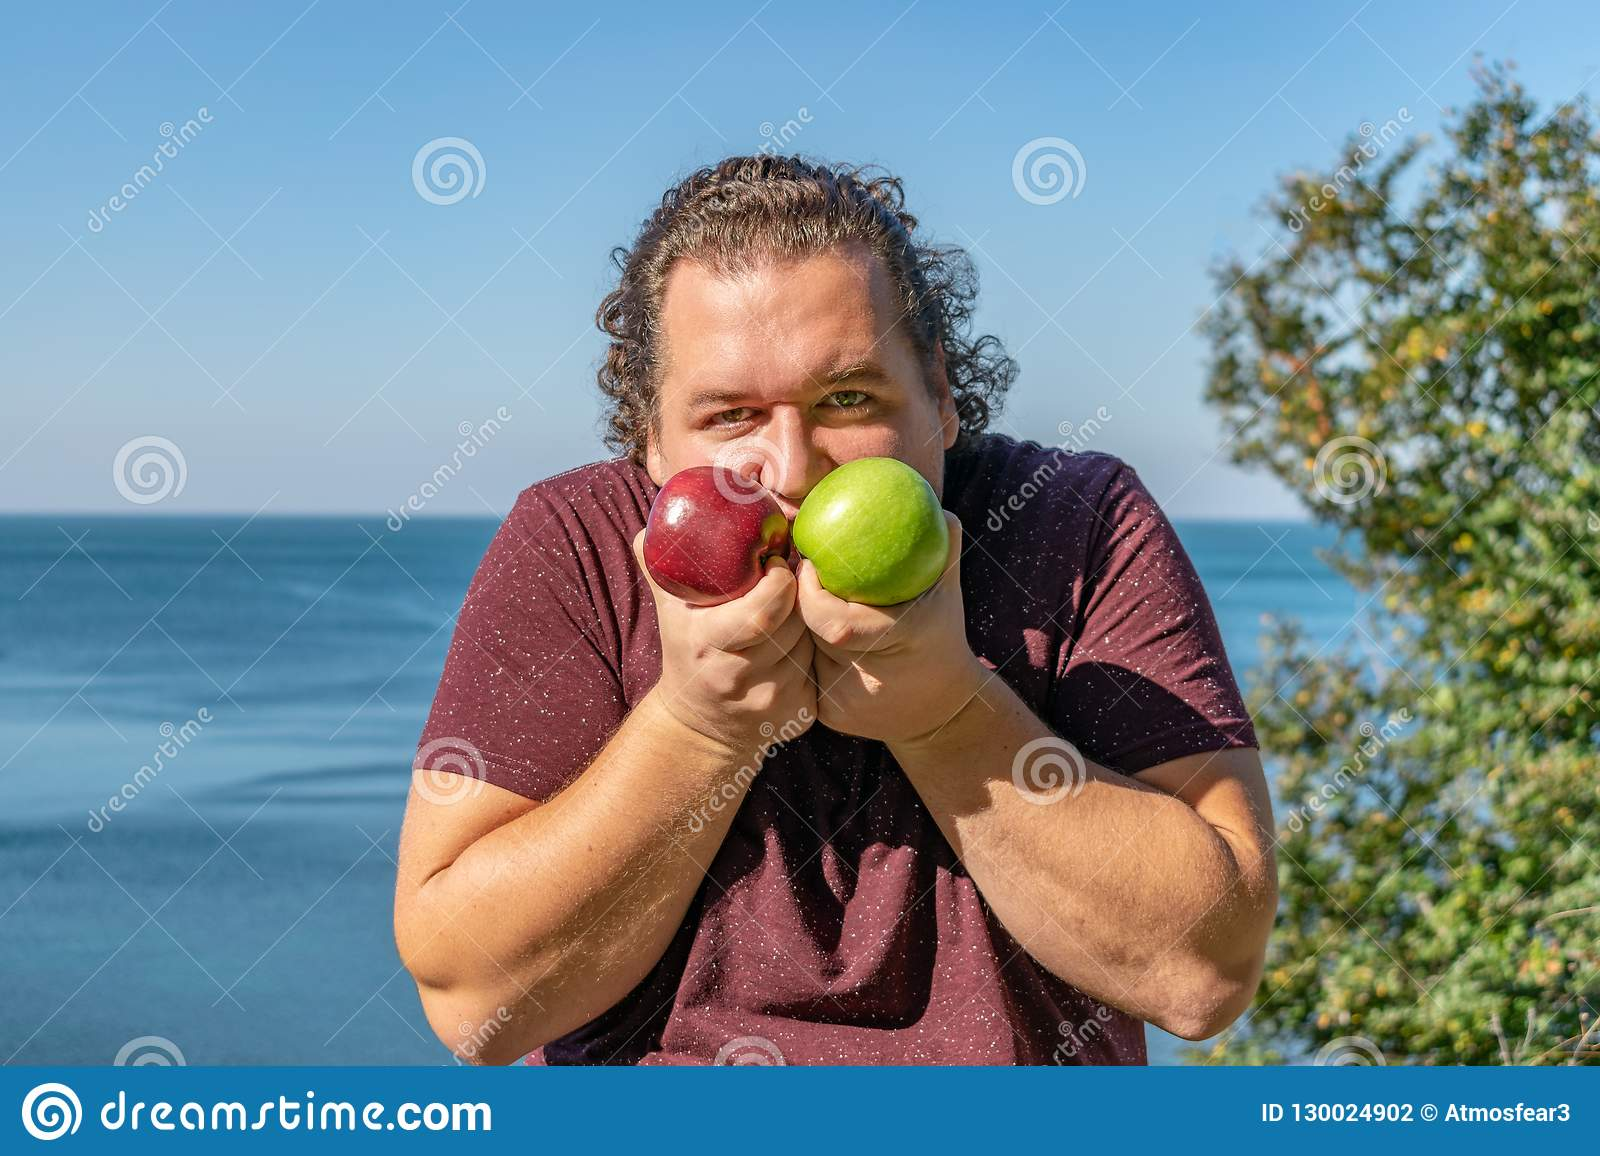 Funny fat man on the ocean eating fruits. Vacation, weight loss and healthy eating